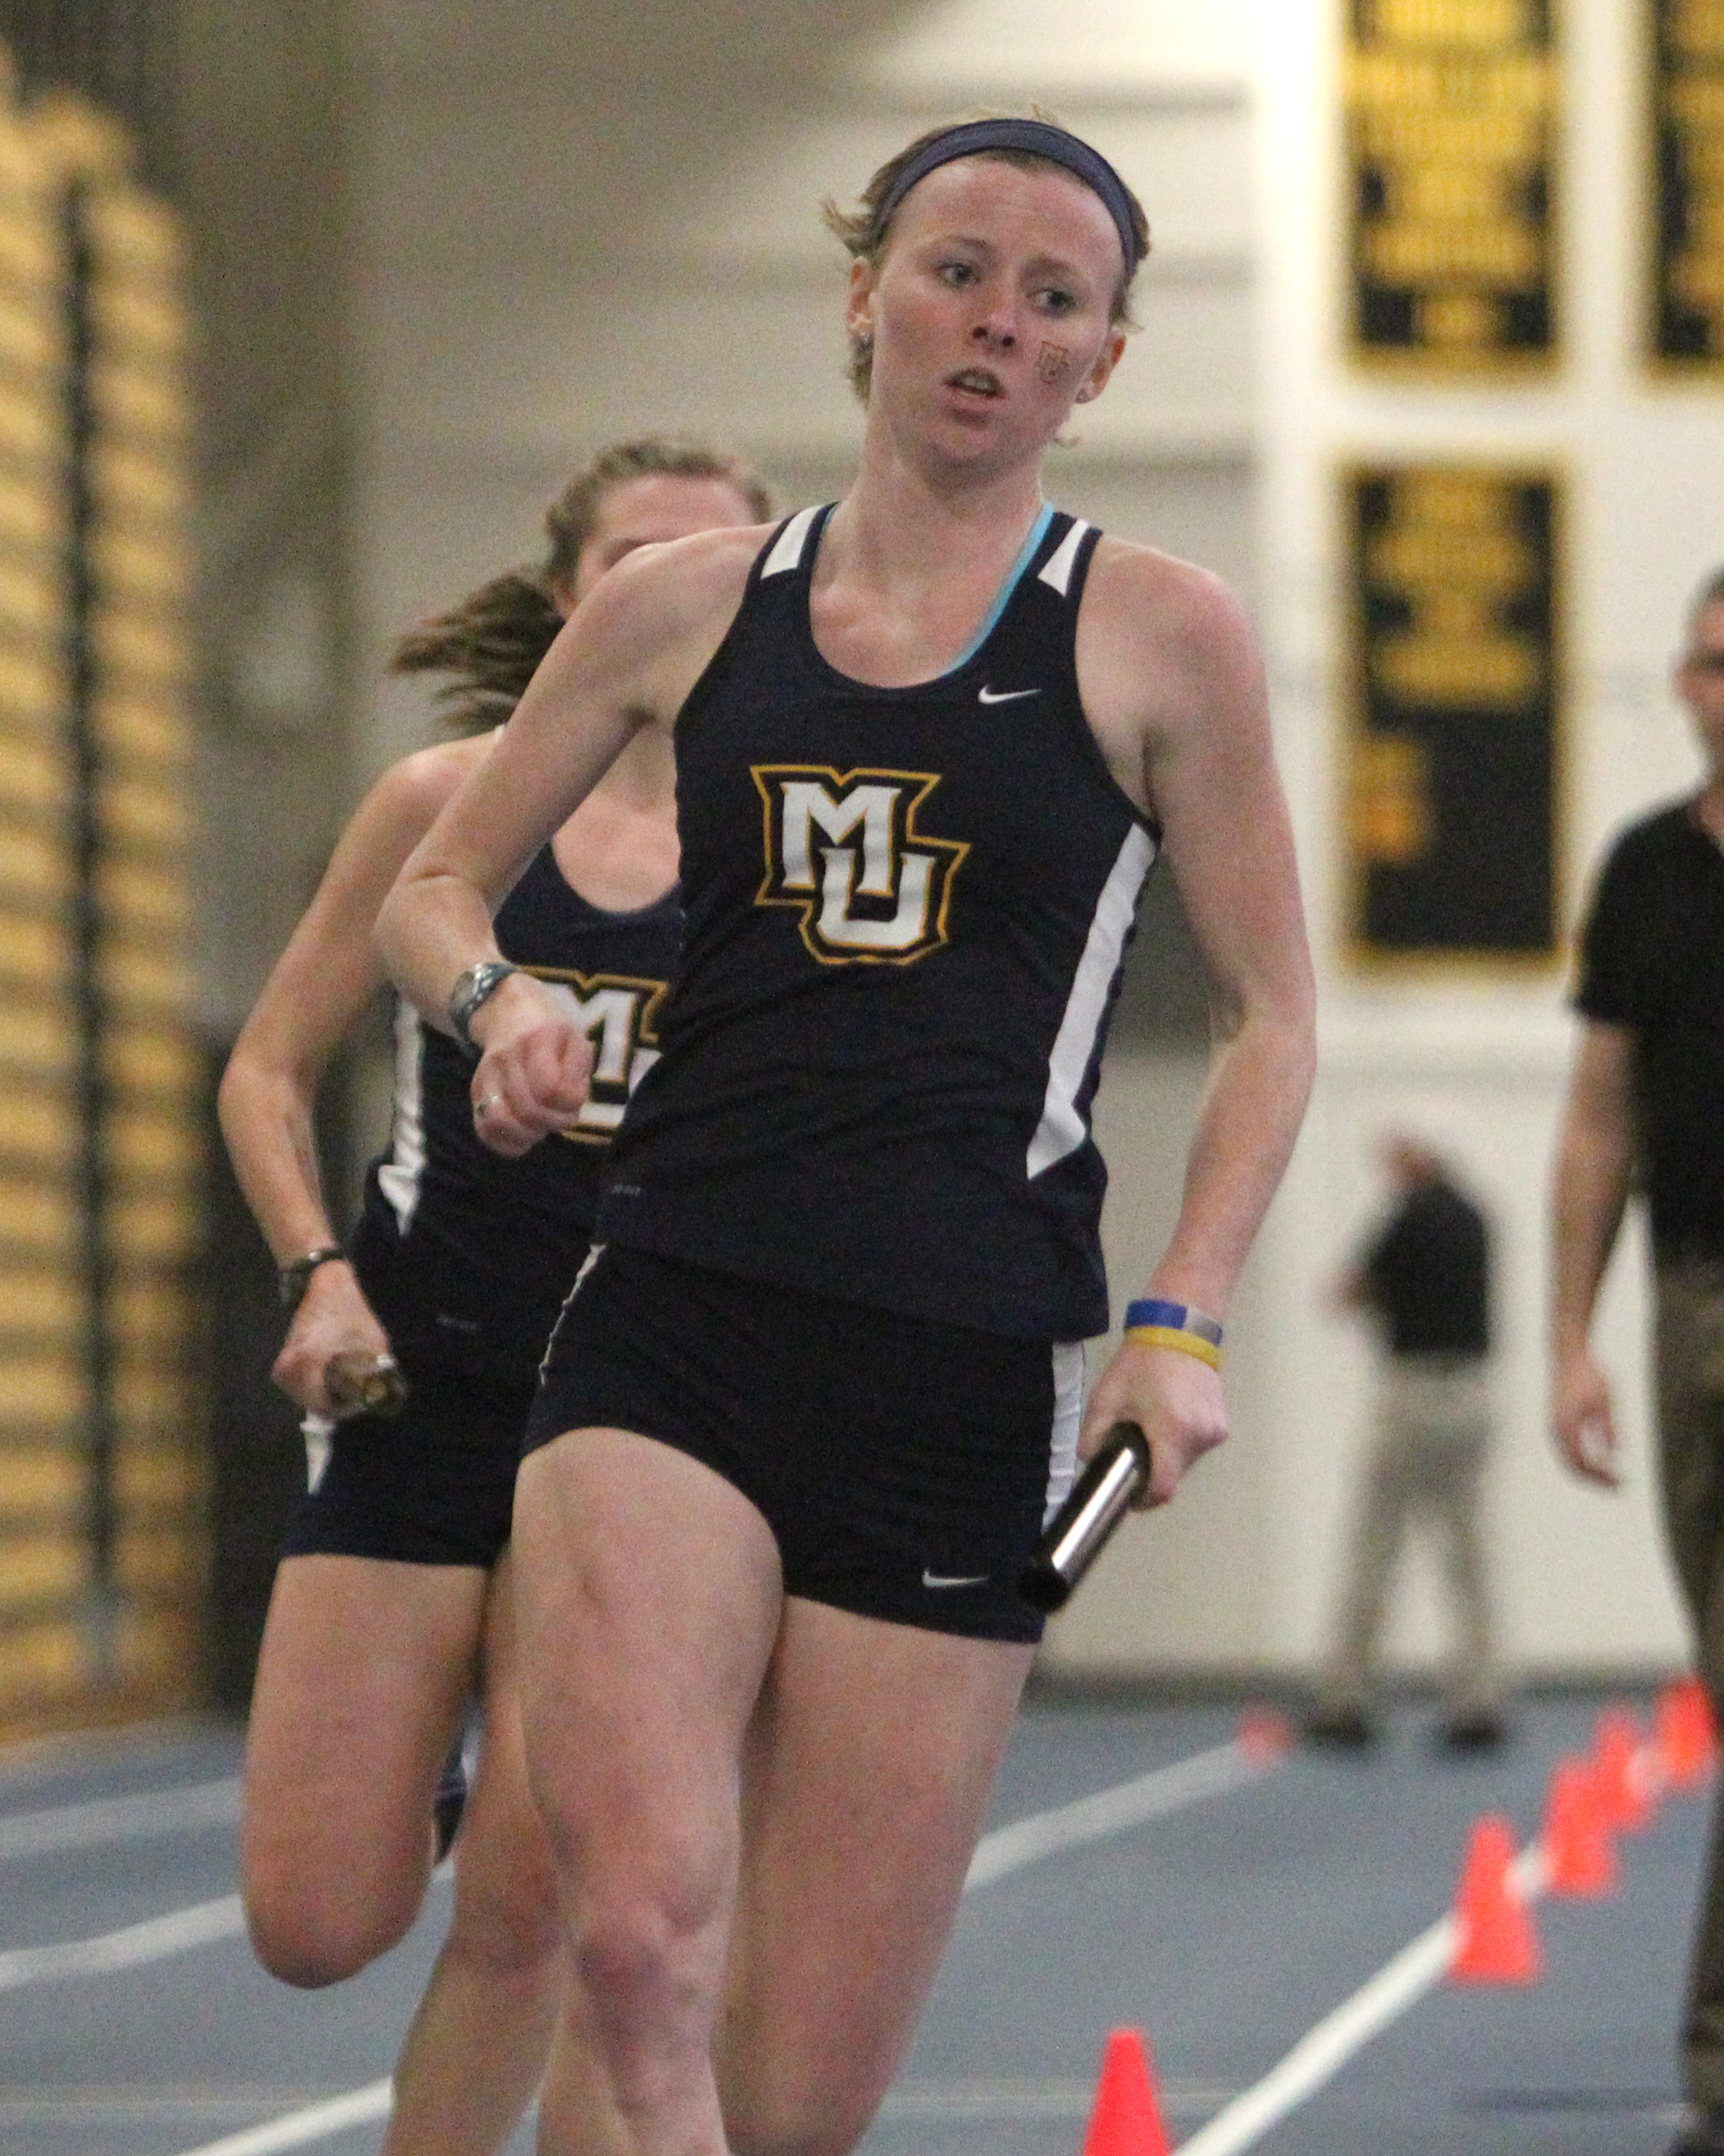 Sarah Ball returns to the track where she set her PR in the indoor mile.